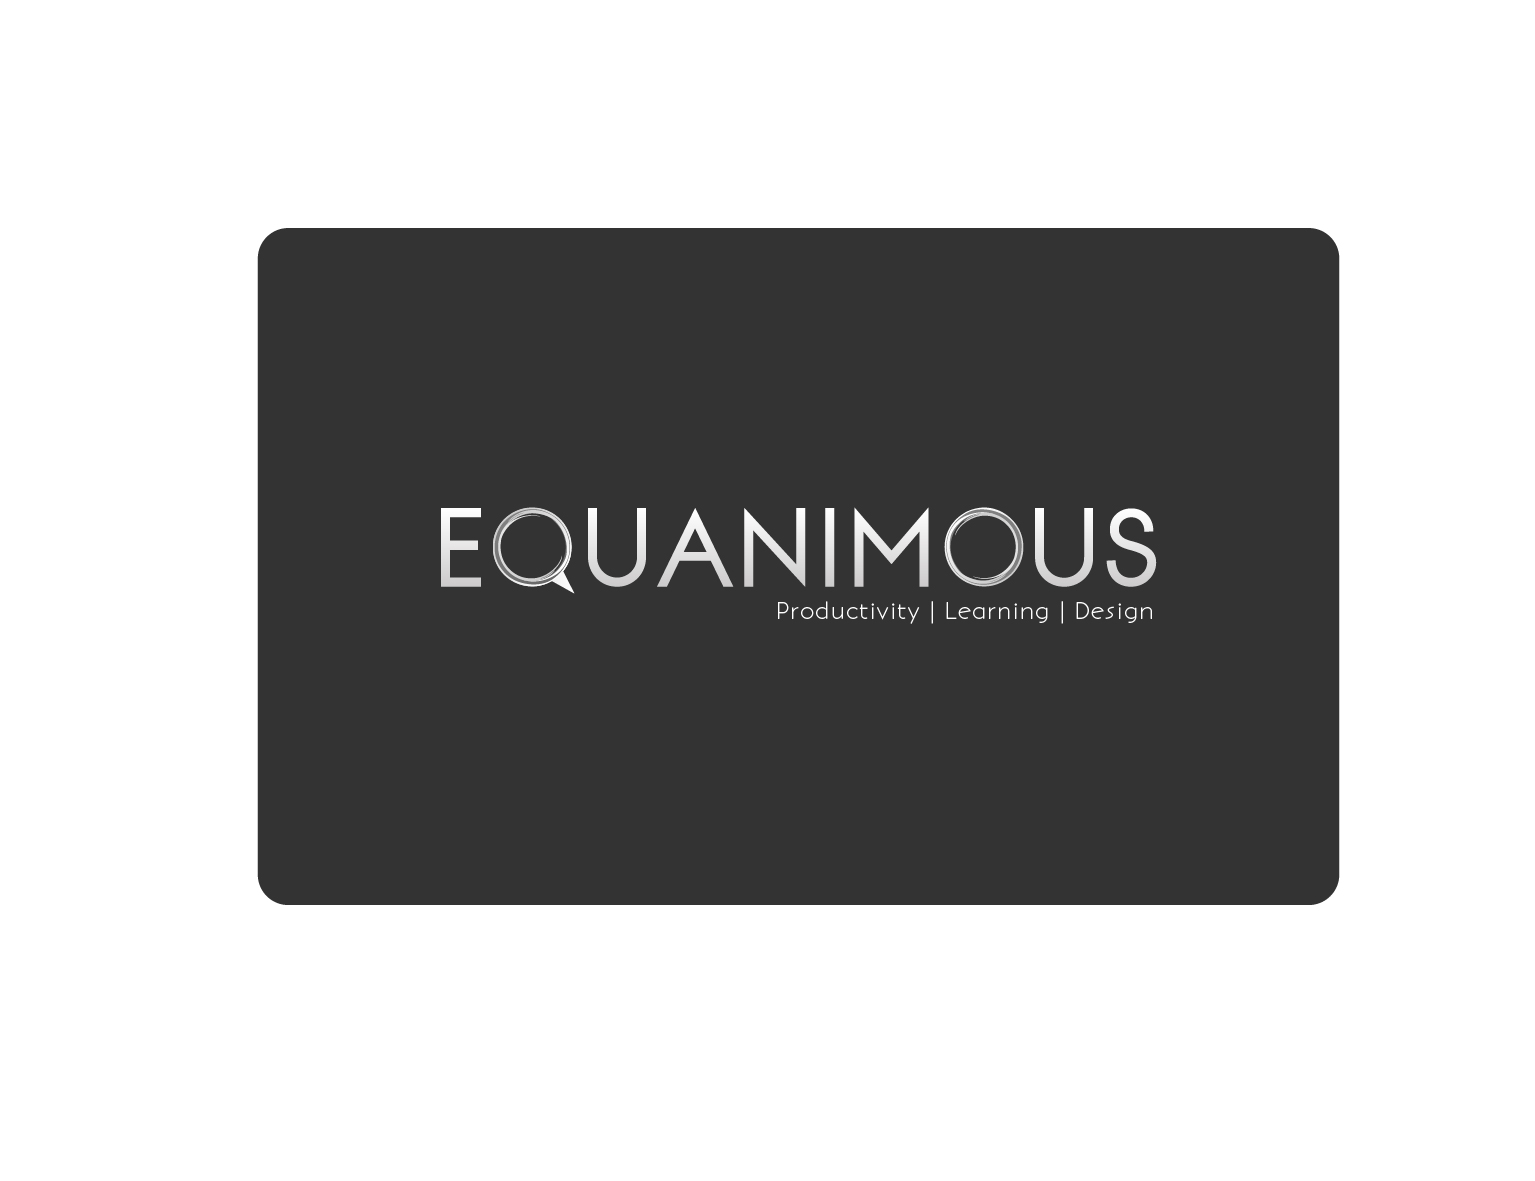 Logo Design by 3draw - Entry No. 374 in the Logo Design Contest Logo Design : EQUANIMOUS : Productivity | Learning | Design.